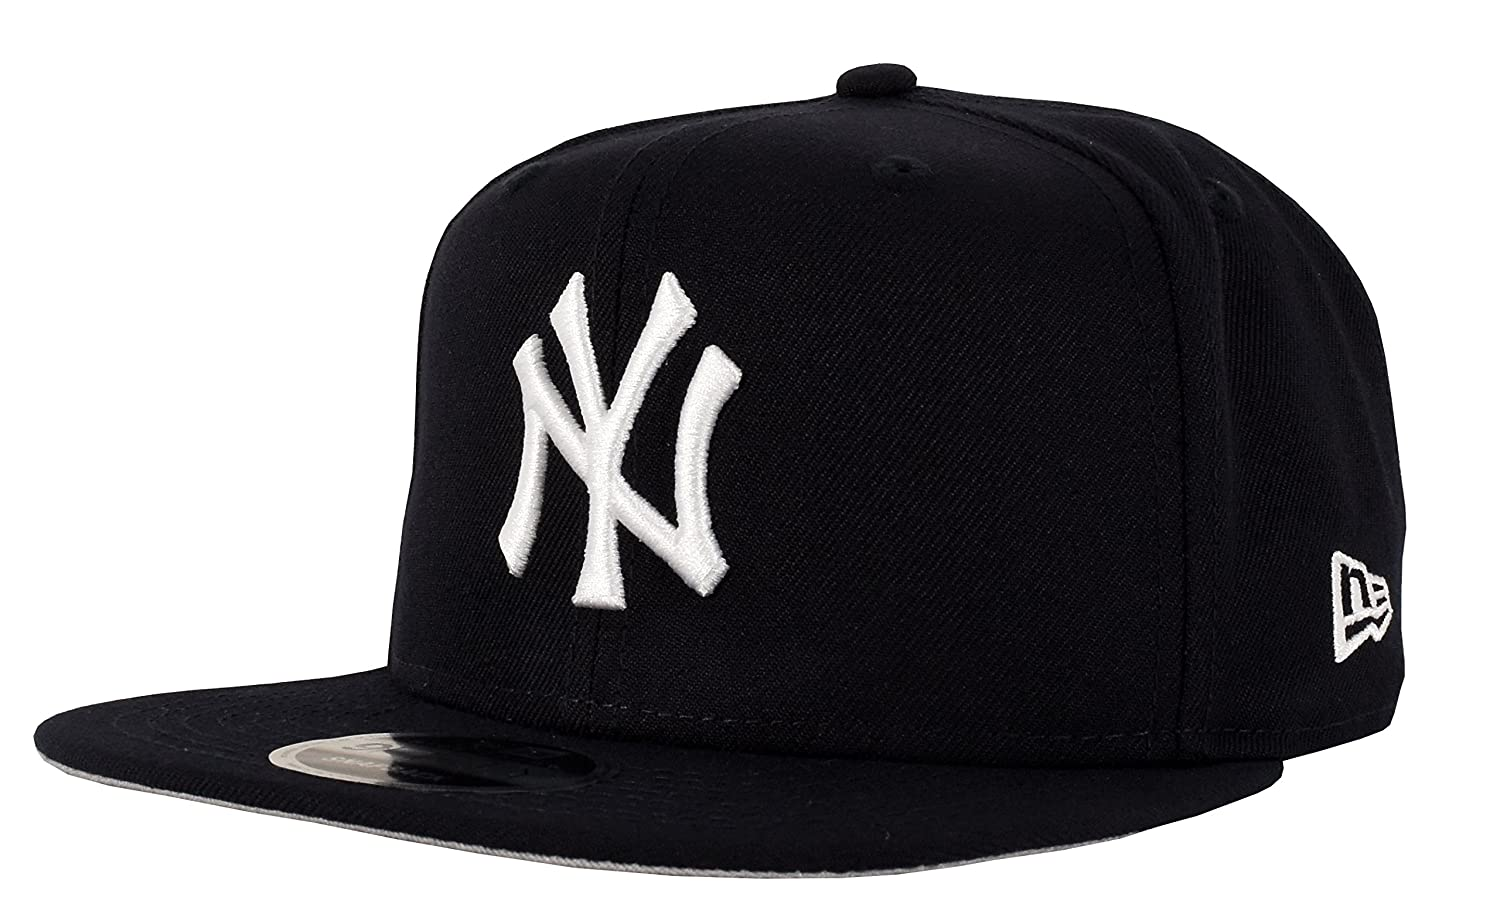 separation shoes ad283 61432 Amazon.com   New Era New York Yankees 9Fifty High Crown Snapback, Navy    Sports   Outdoors